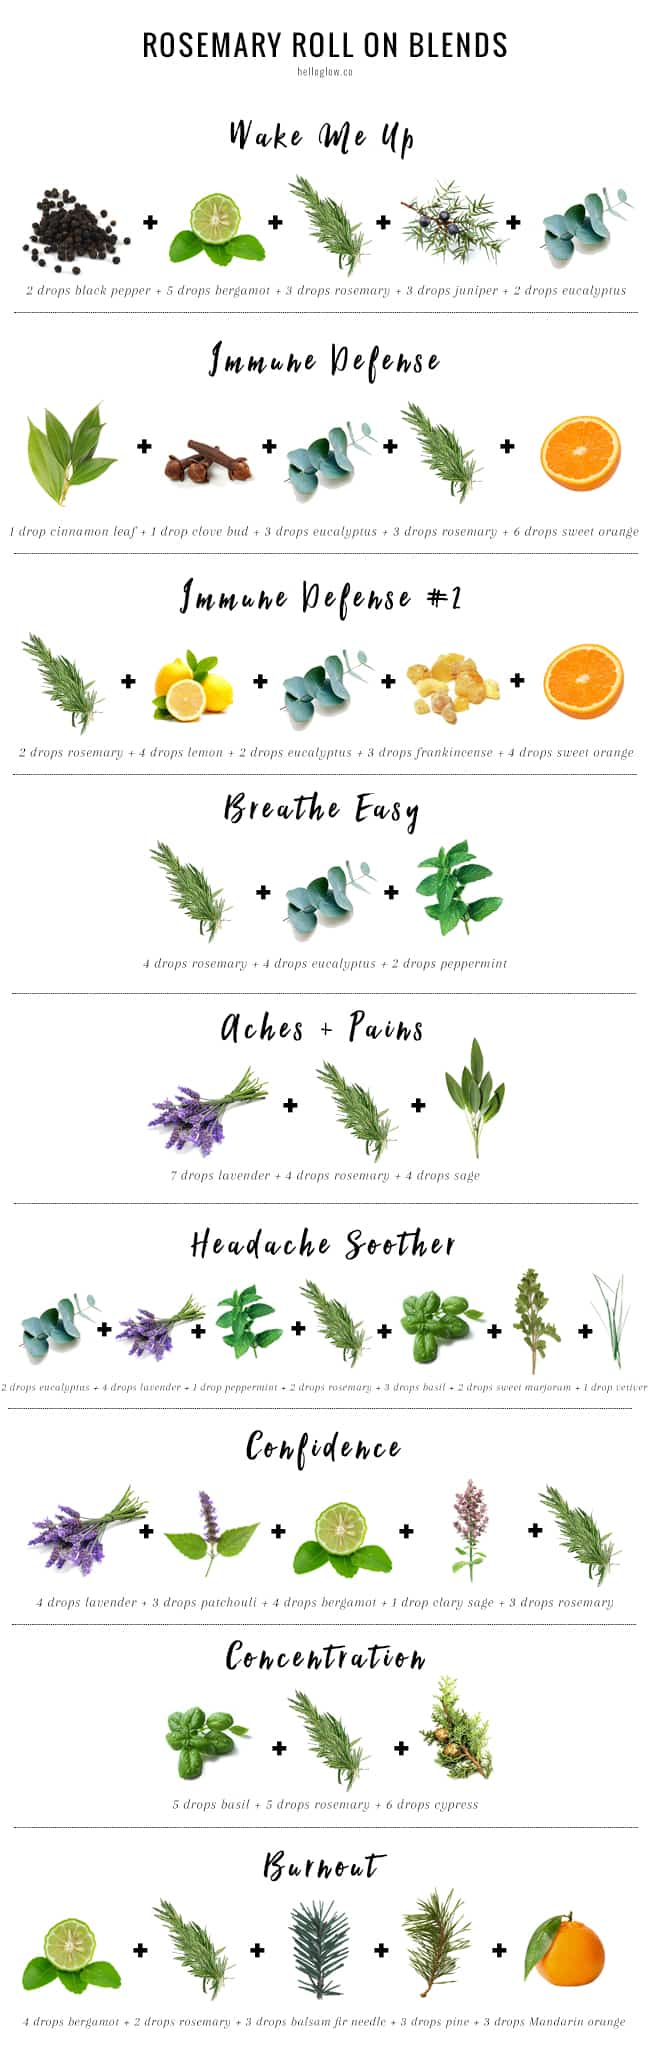 12 Rosemary Essential Oil Blends For Roll On Aromatherapy Relief Hello Glow